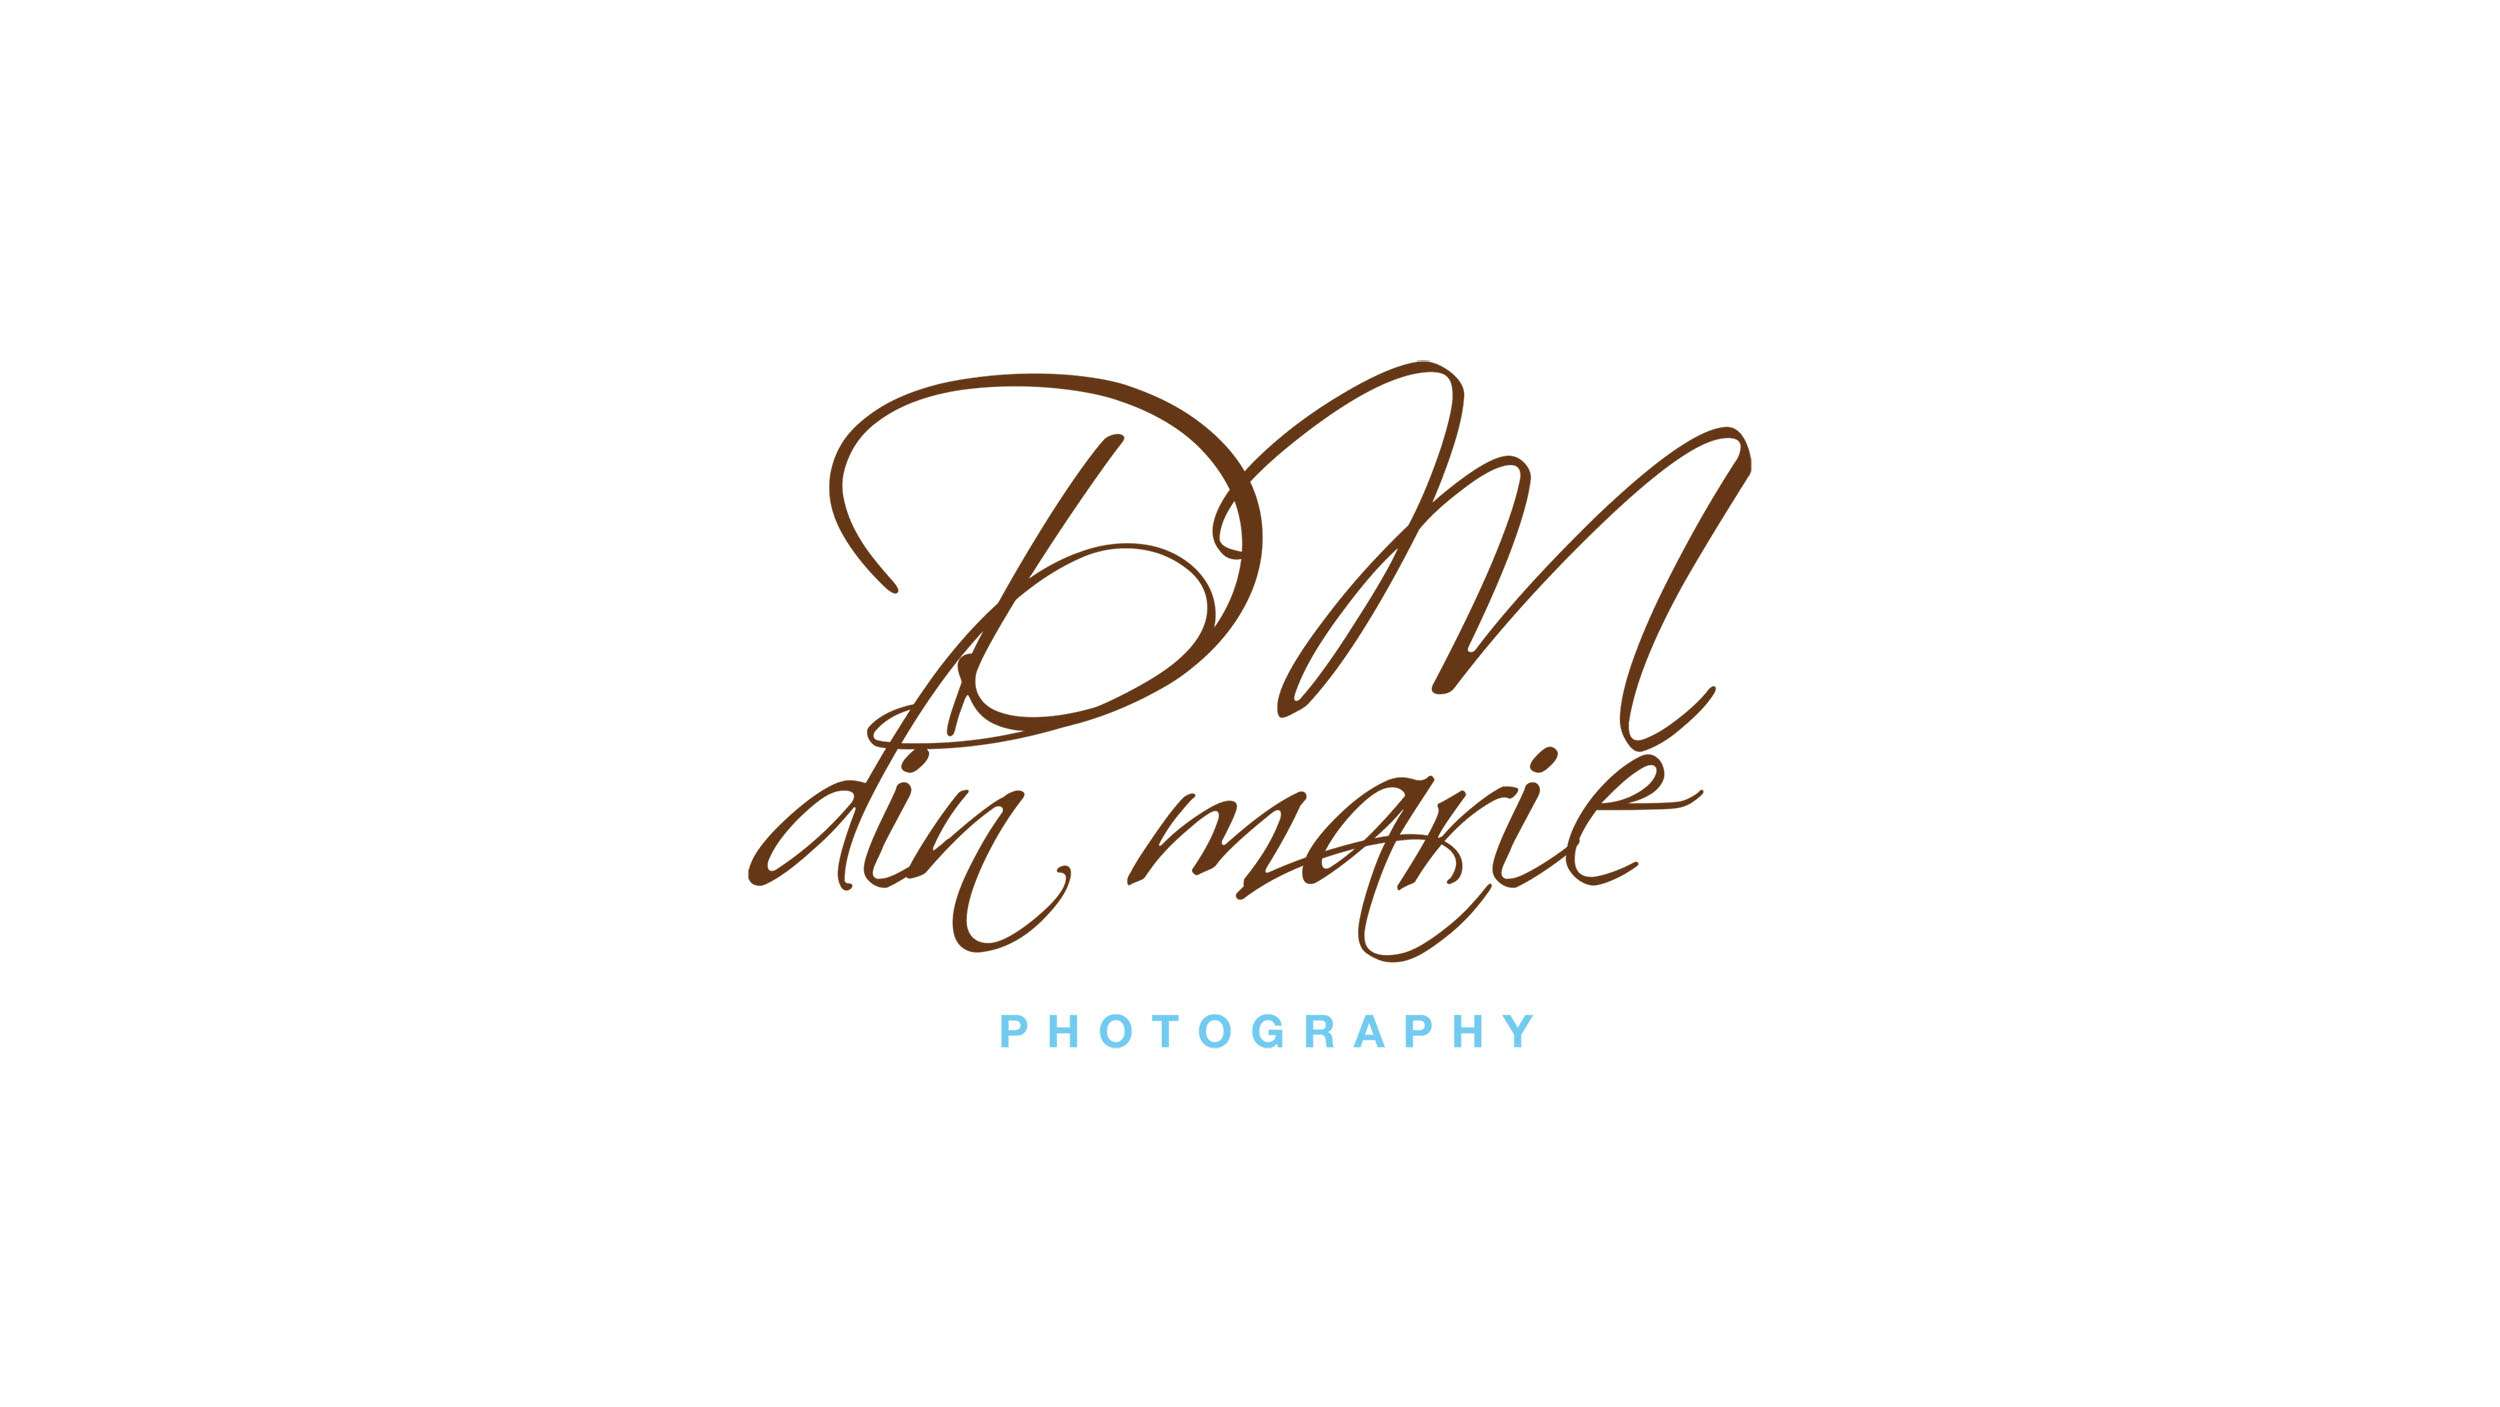 Logo design using script typeface for a professional photographer, Din Marie Photography.